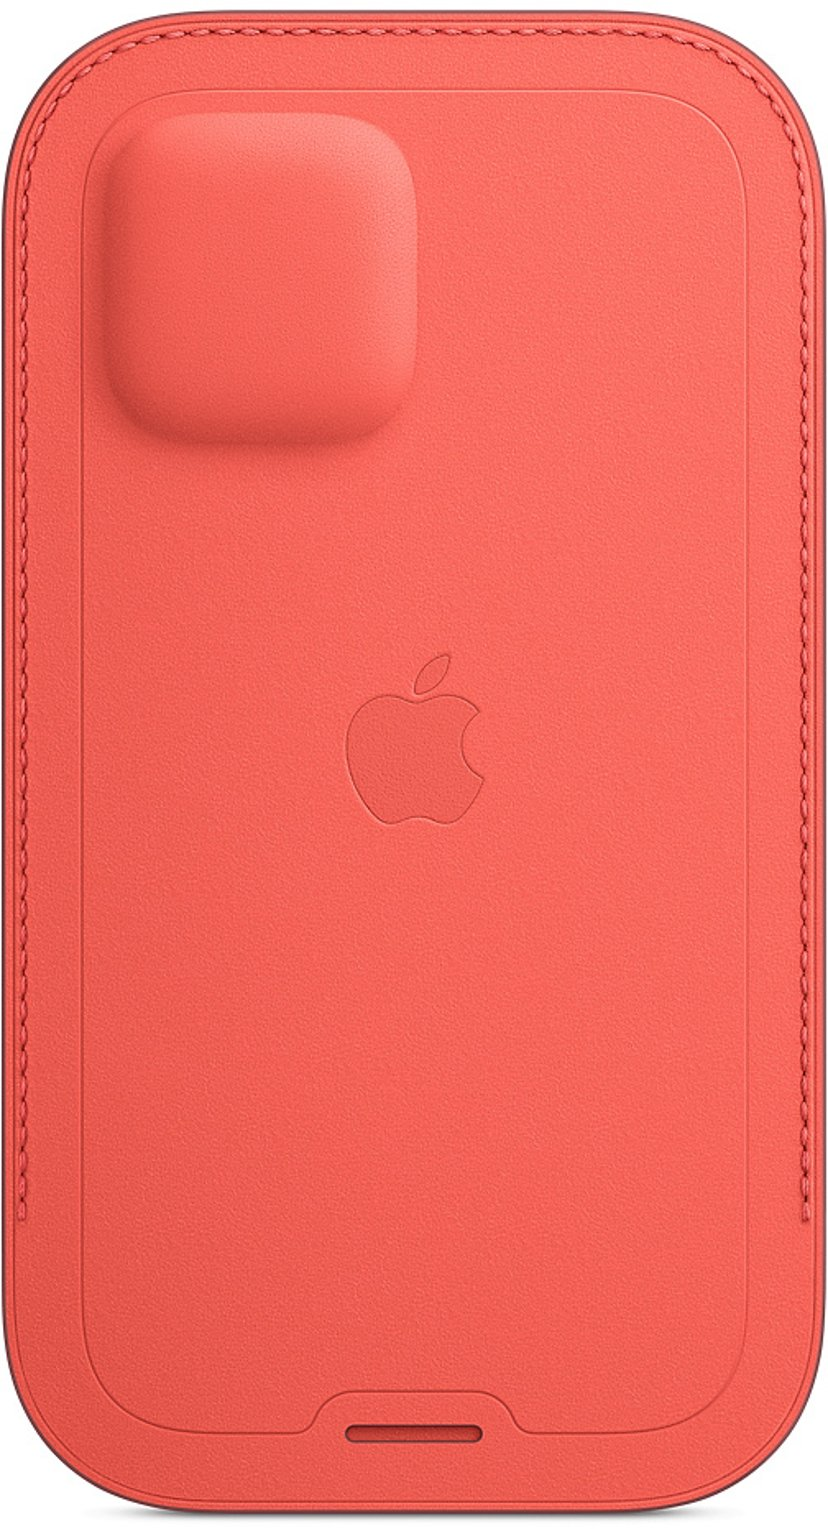 Apple Sleeve with MagSafe iPhone 12 Pro Max Rosa citrus